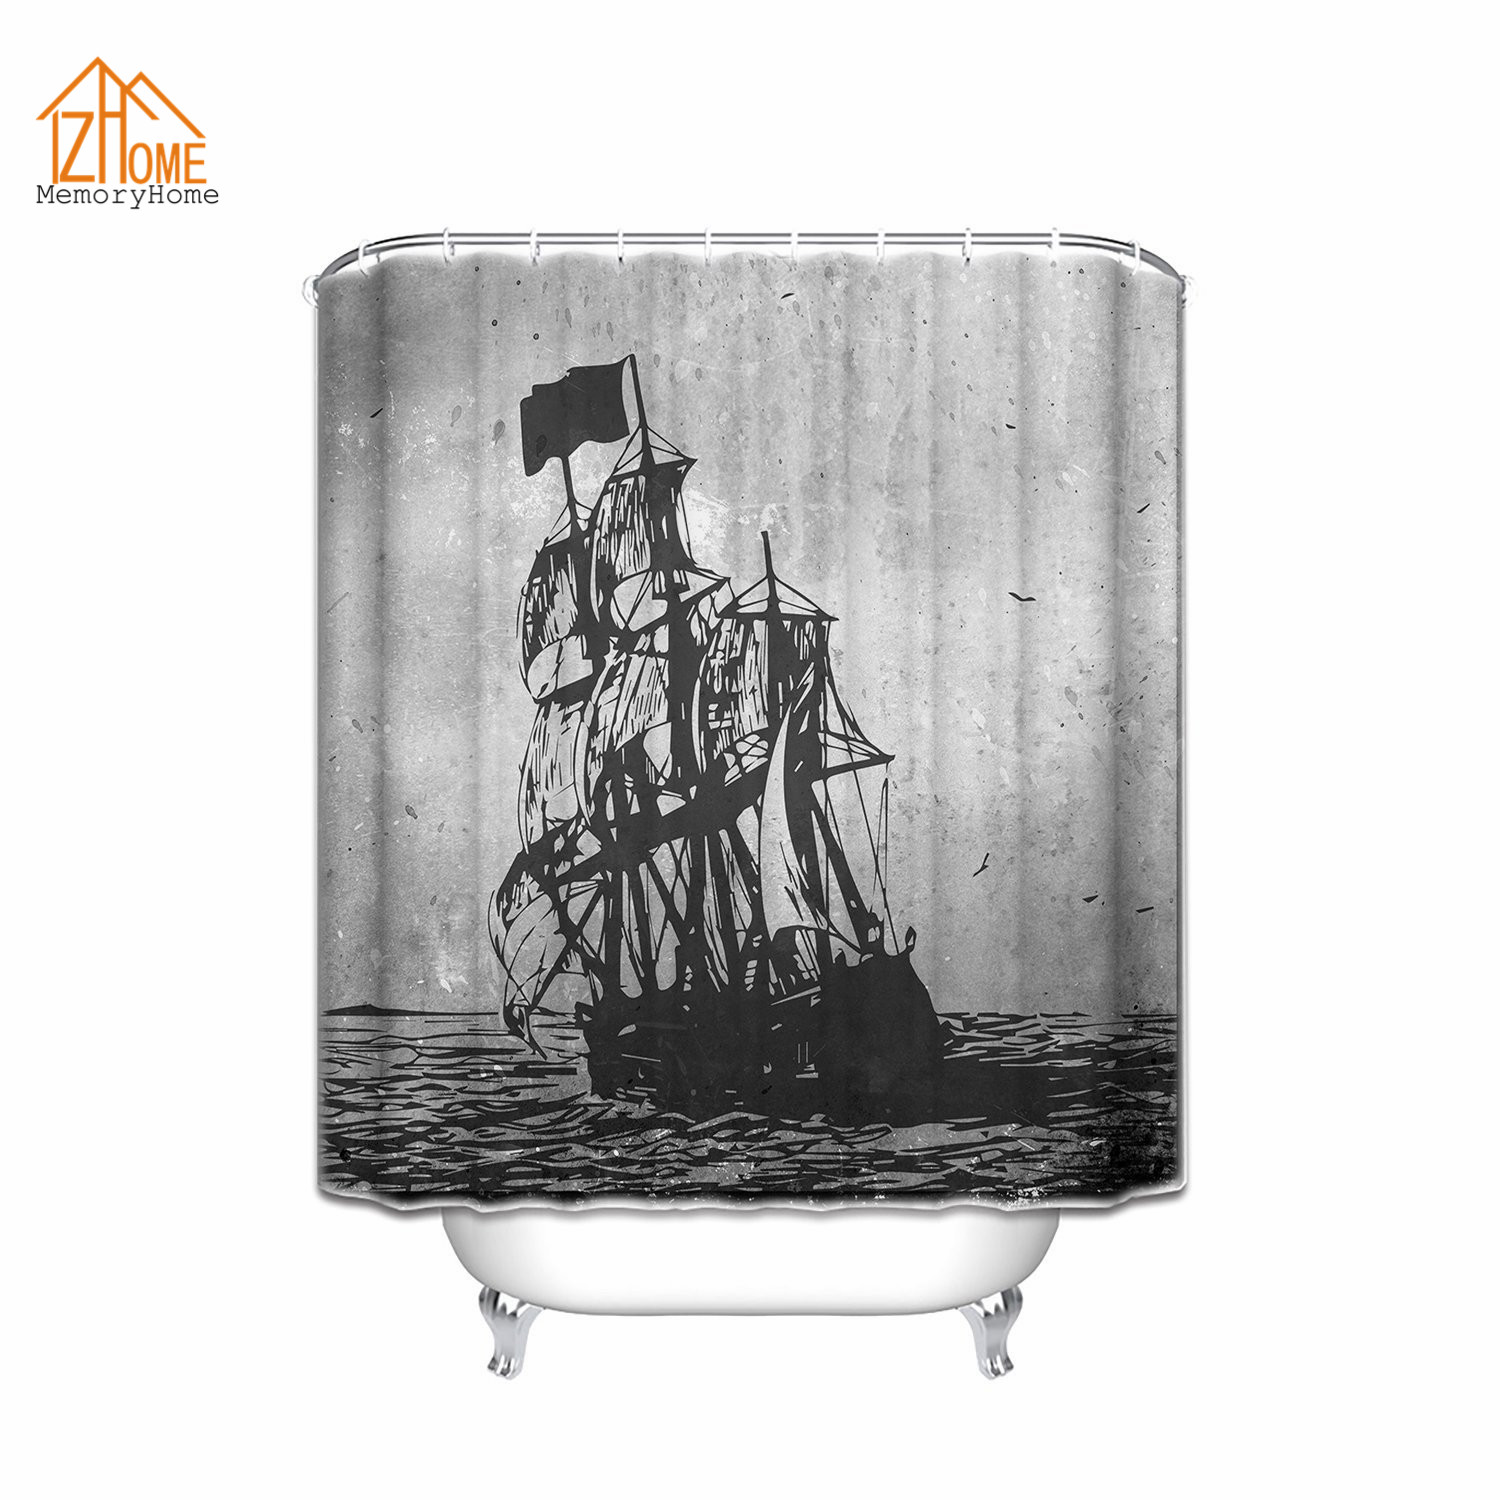 Jolly roger shower curtain - Memory Home Vintage Sailboat Shower Curtain Old Pirate Ship In The Sea Historic Legend Cruise Retro Style Bathroom Curtains